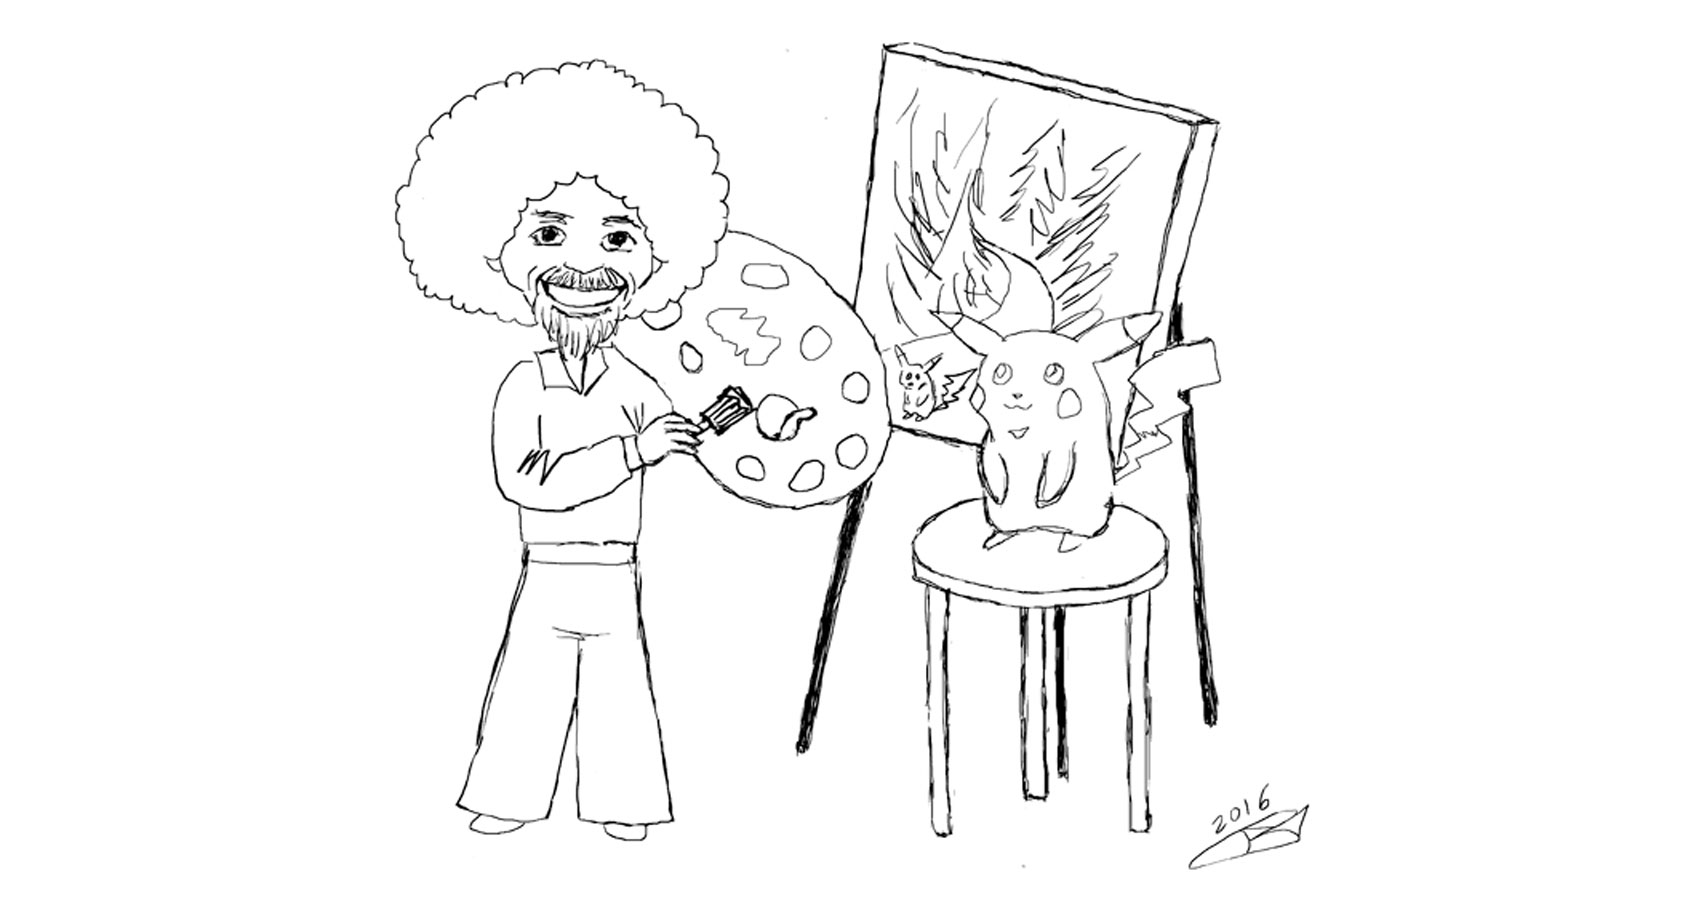 Don't Question Bob Ross by Robyn MacKinnon at Spillwords.com